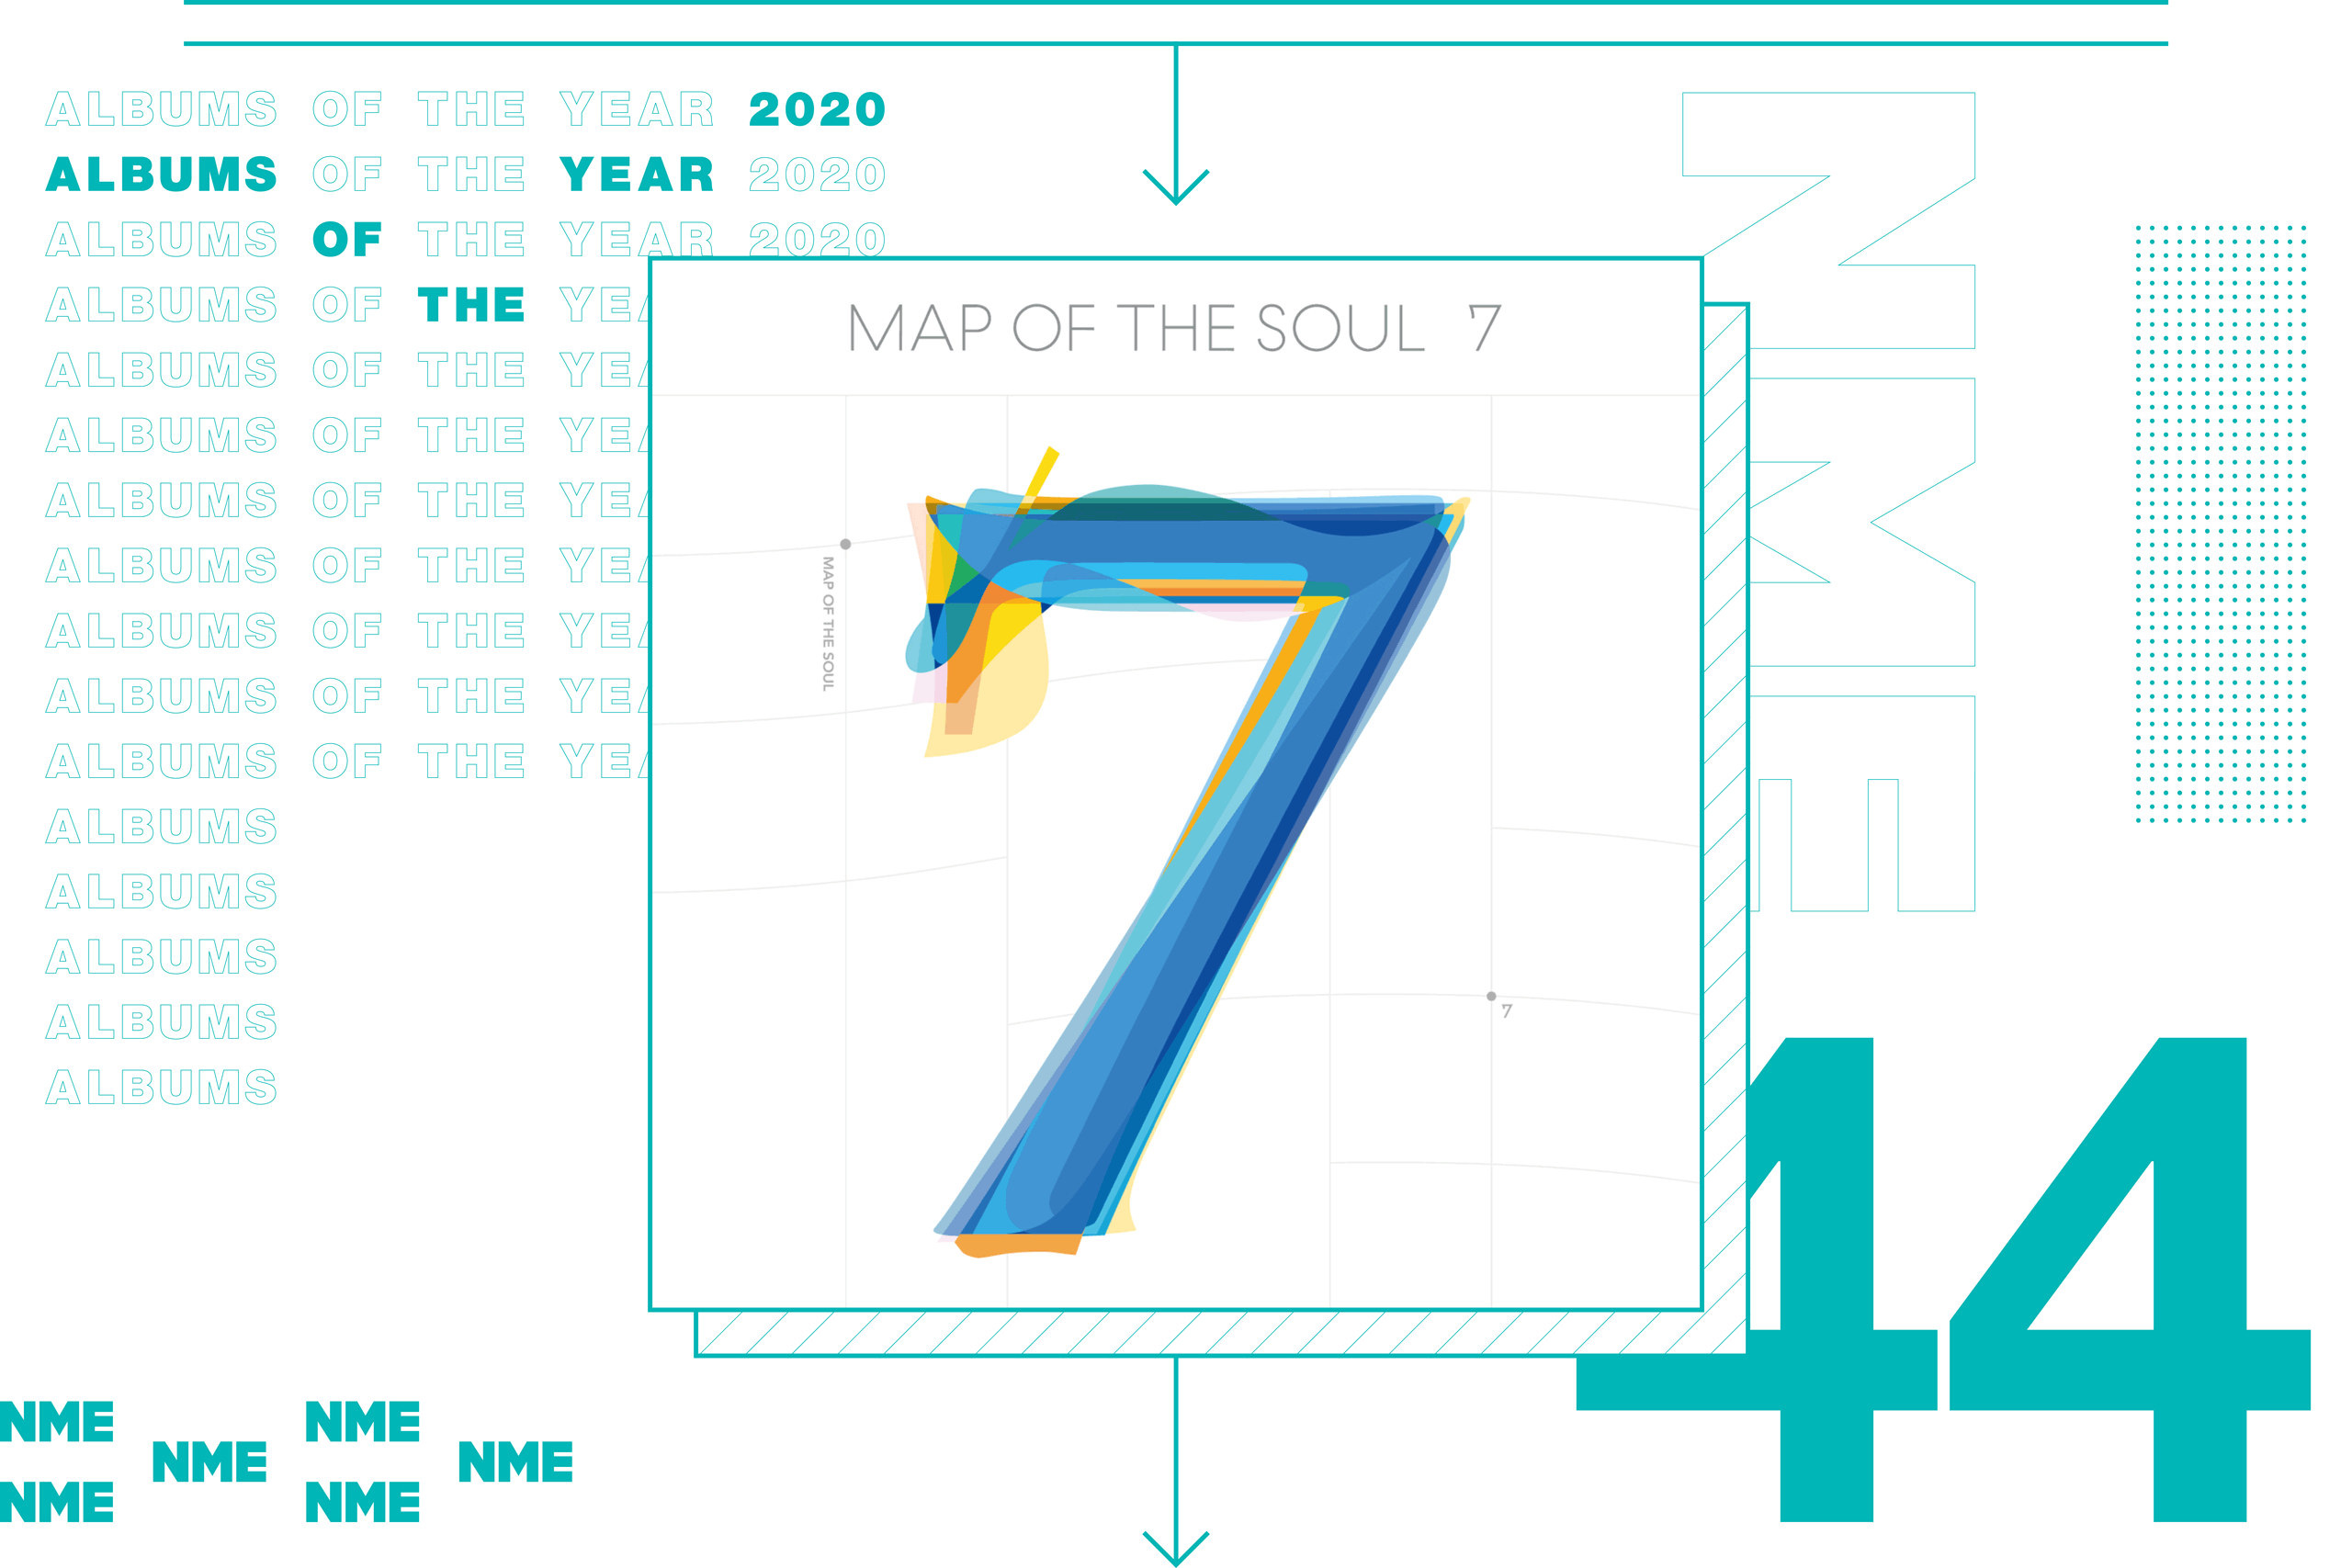 NME Album Of The Year 2020 BTS, 'Map Of The Soul: 7'